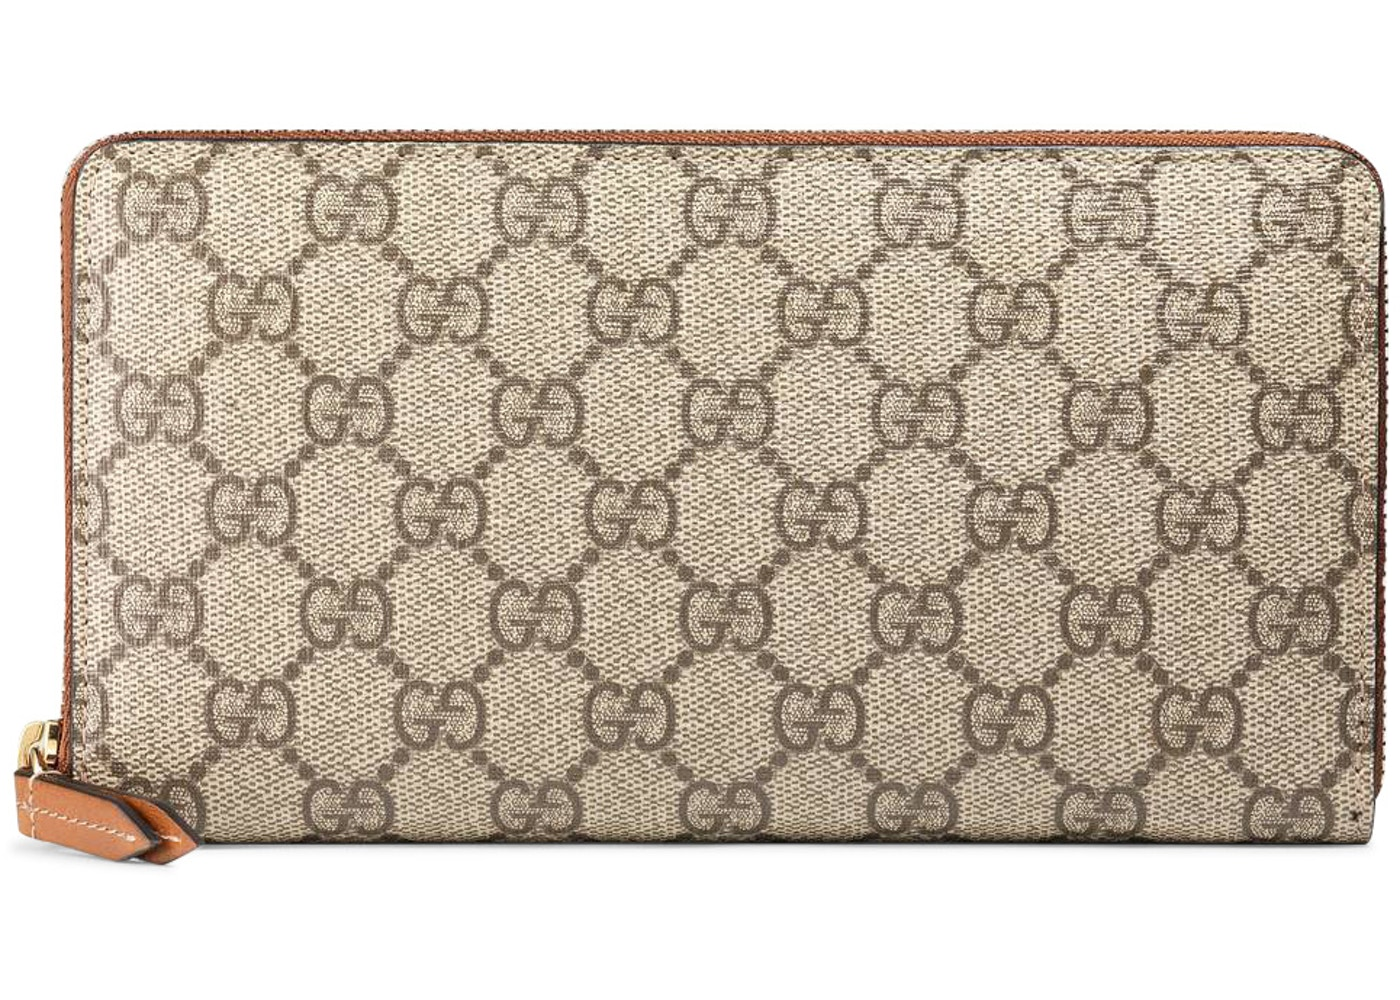 04c6f4c925e7 Buy & Sell Gucci Other Handbags - New Highest Bids